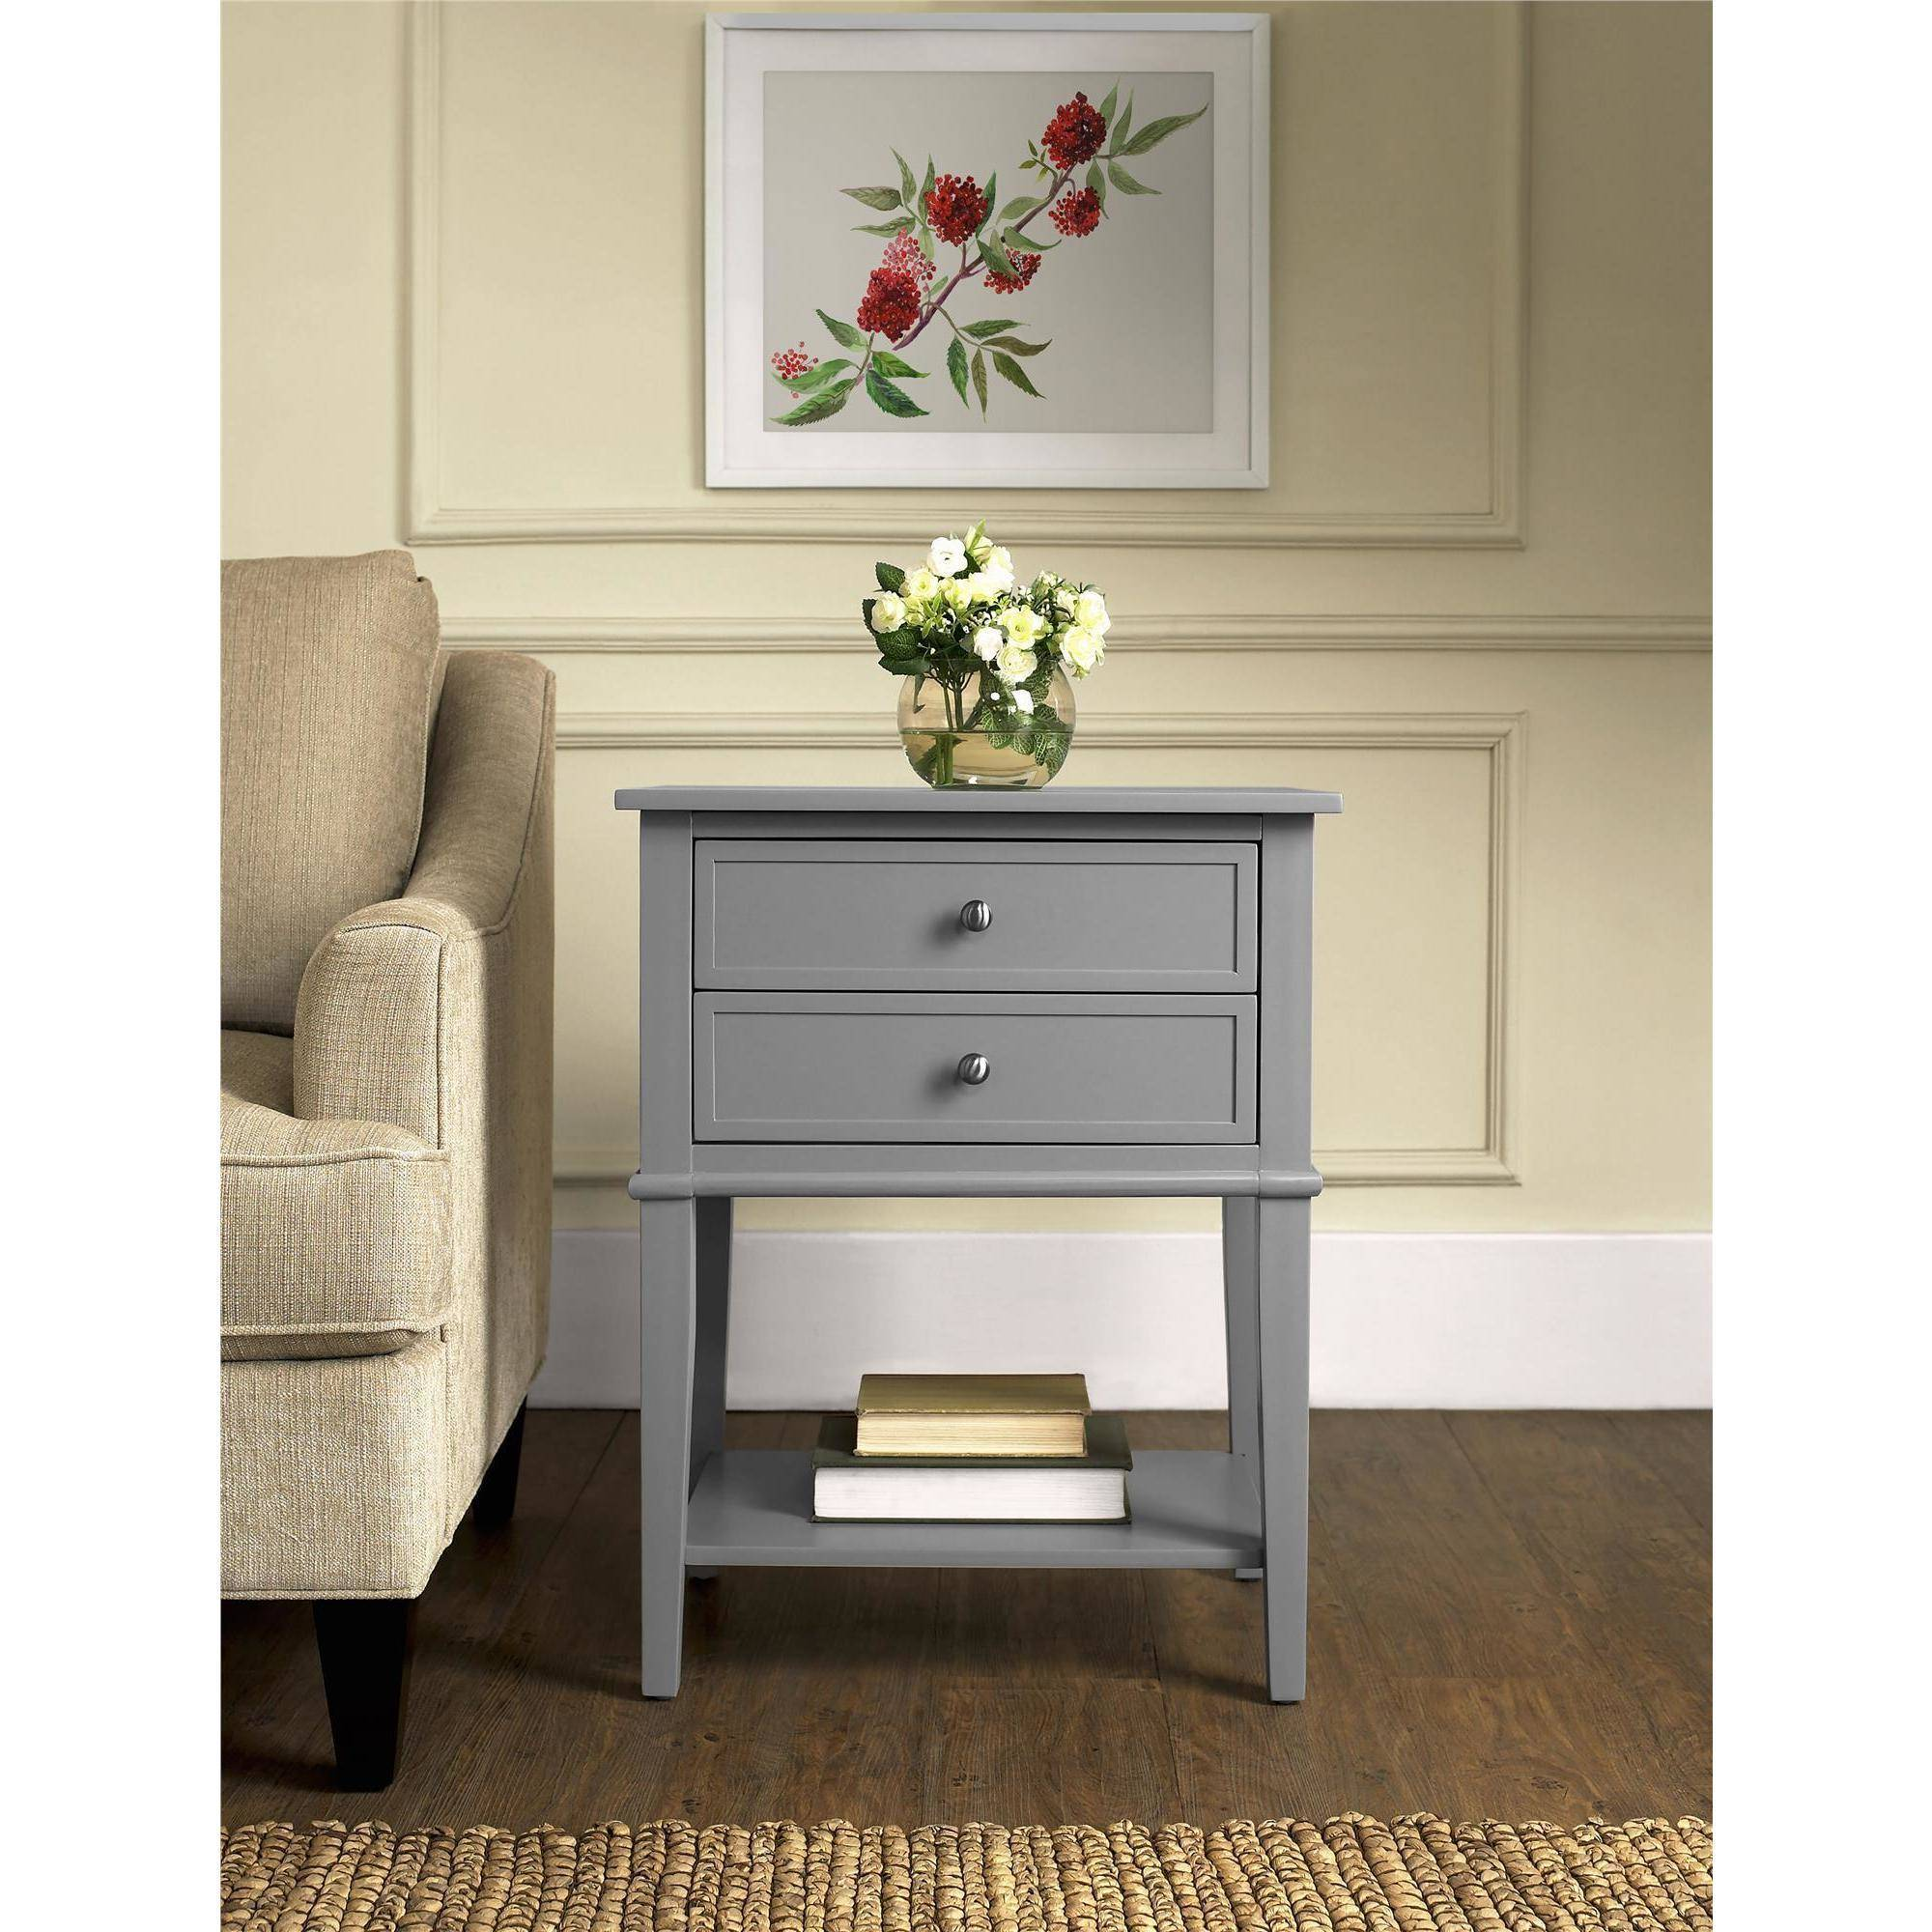 ameriwood home franklin accent table with 2 drawers multiple colors